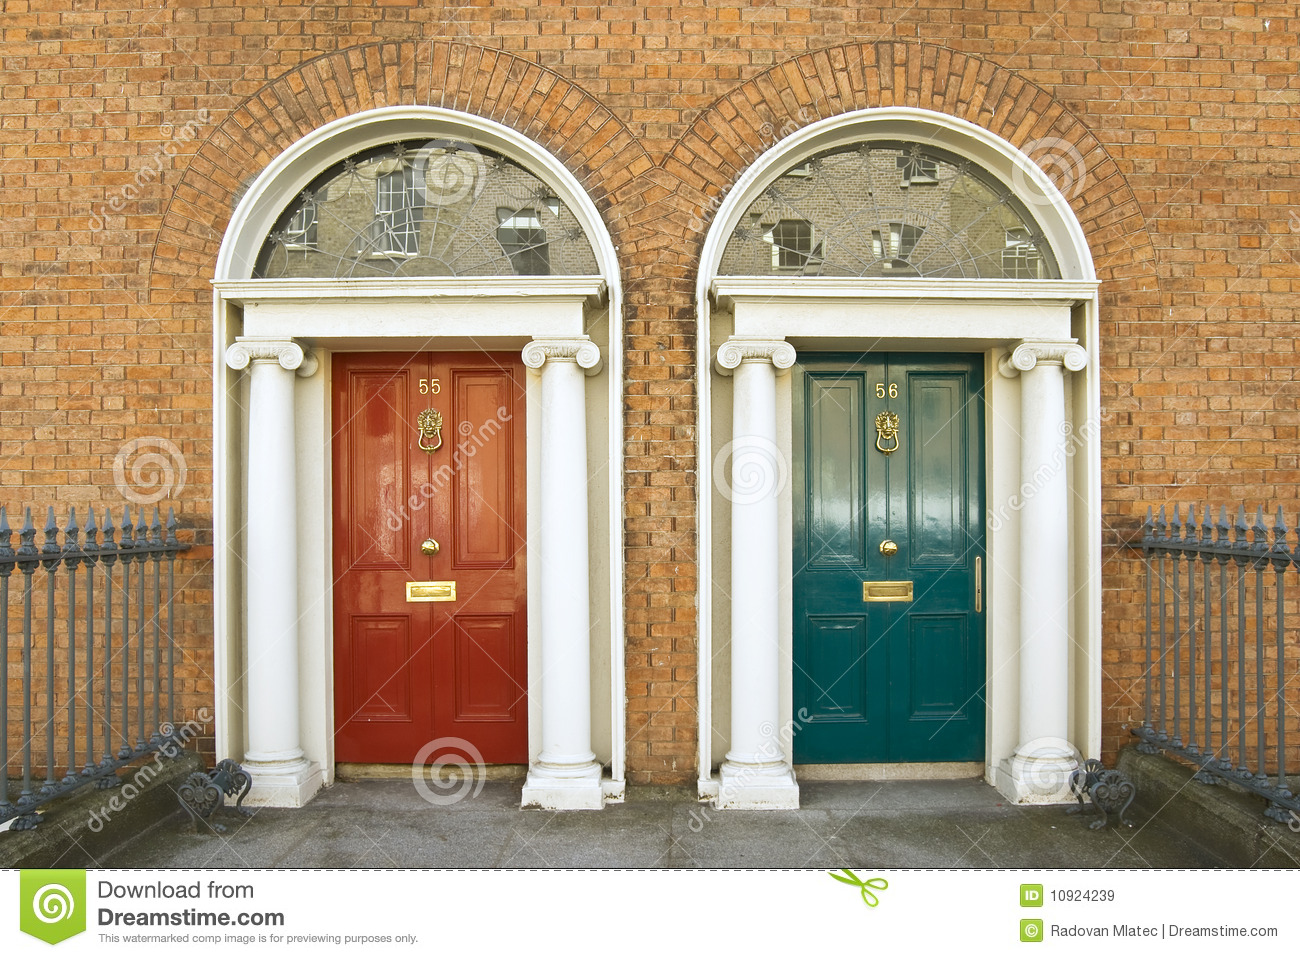 Dublin georgian doors & Dublin georgian doors stock image. Image of building - 10924239